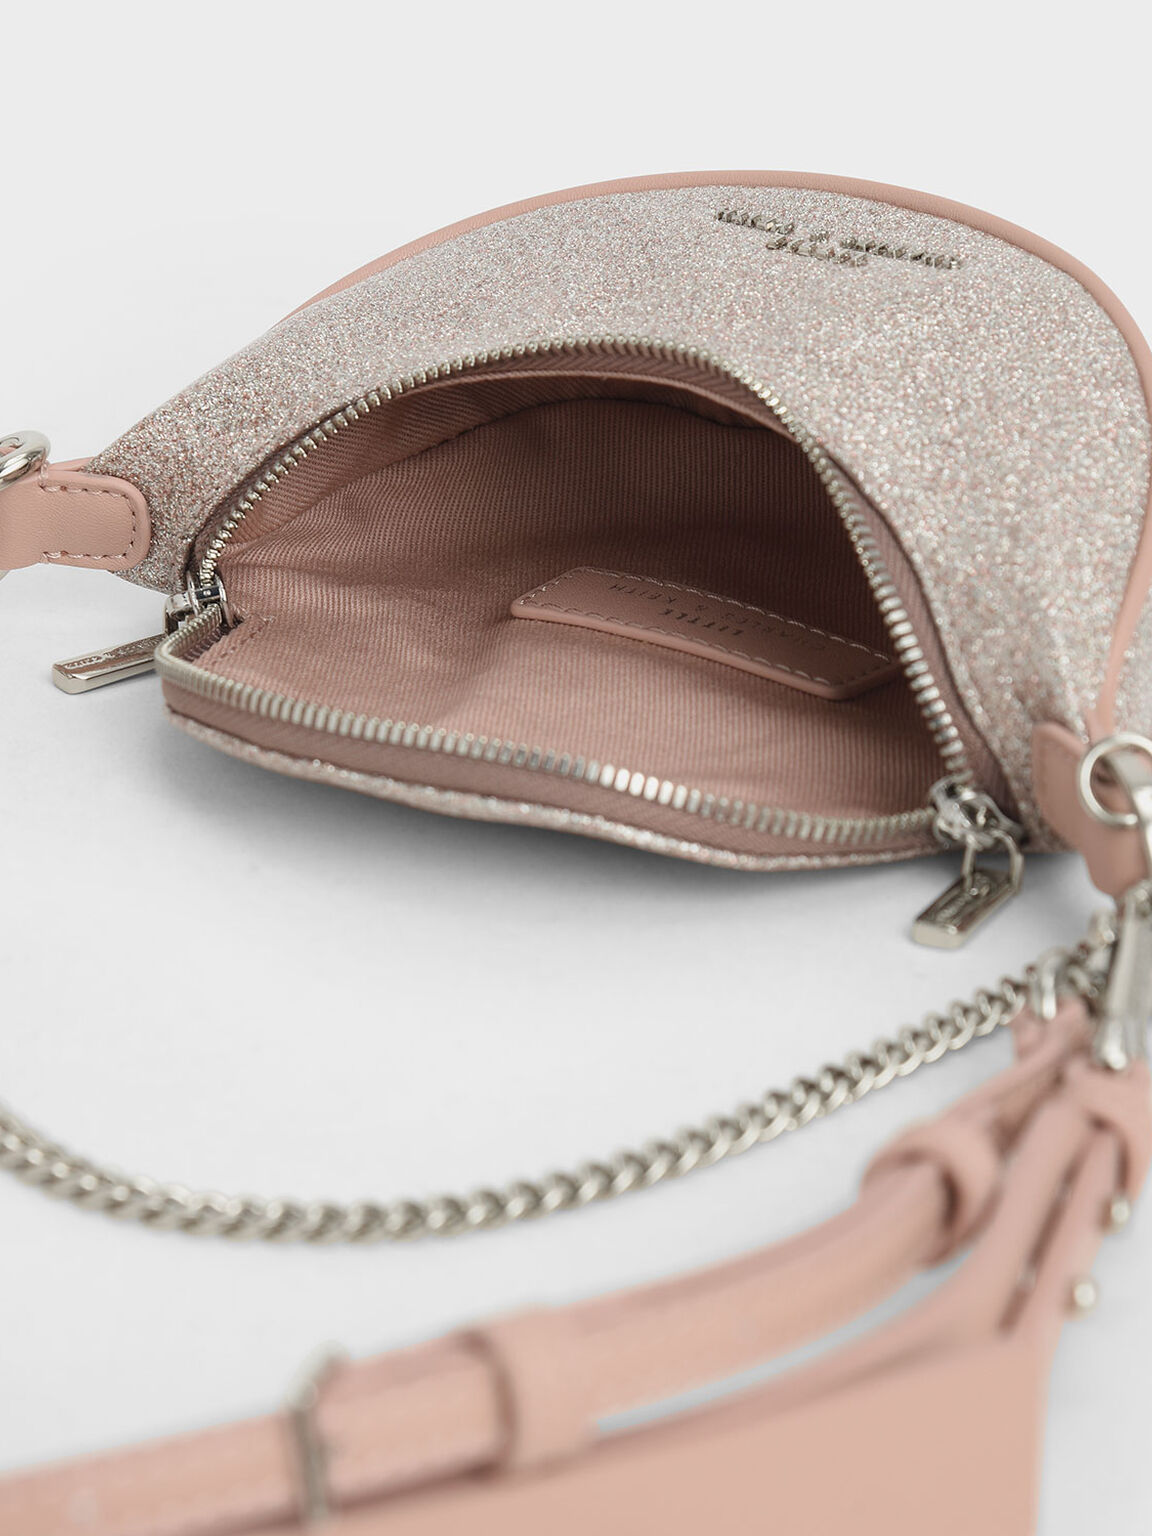 Girls' Glittered Chain-Embellished Crossbody Bag, Light Pink, hi-res